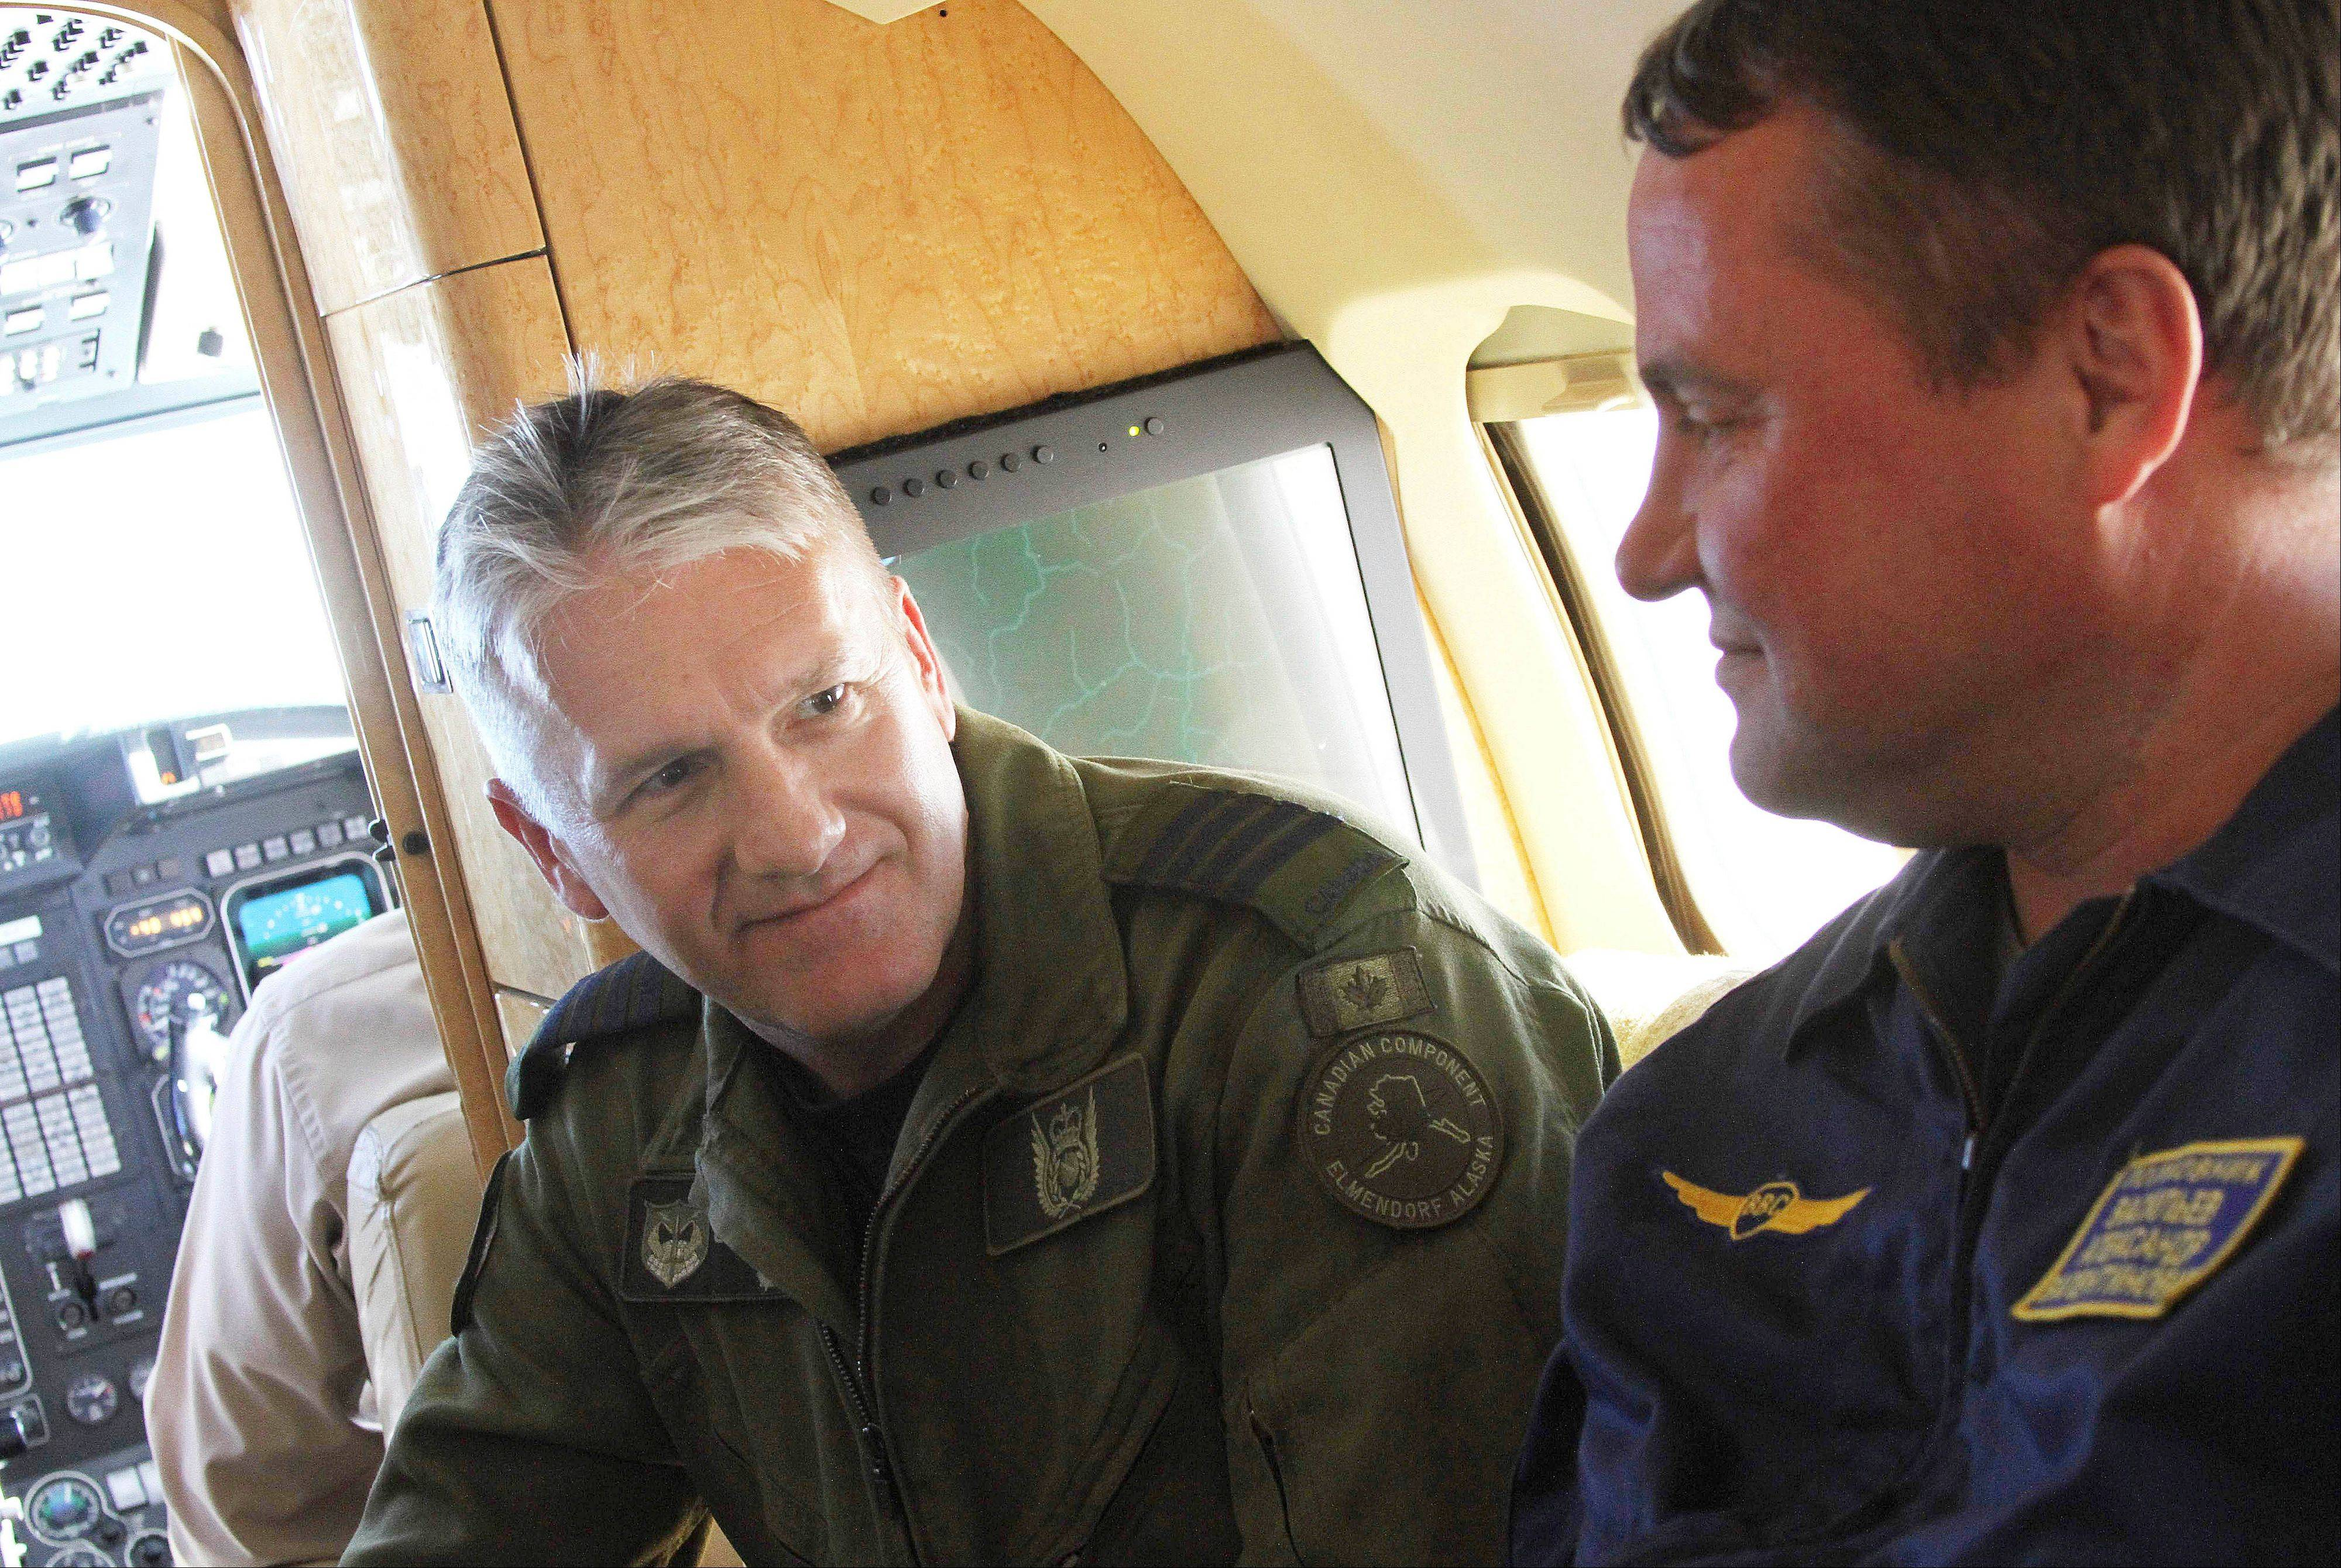 Col. Patrick Carpentier, left, deputy commander of the NORAD Alaska Region, speaks with Russian Federation Air Force Col. Alexander Vasiliev on a plane that was hijacked during a simulation to test the response of NORAD and Russian Federation forces near Alaska. The exercise involved Canadian and U.S. forces from NORAD, along with the Russian Federation, and saw the Canadians successfully hand off the hijacked plane to Russian fighters over the Bering Strait.